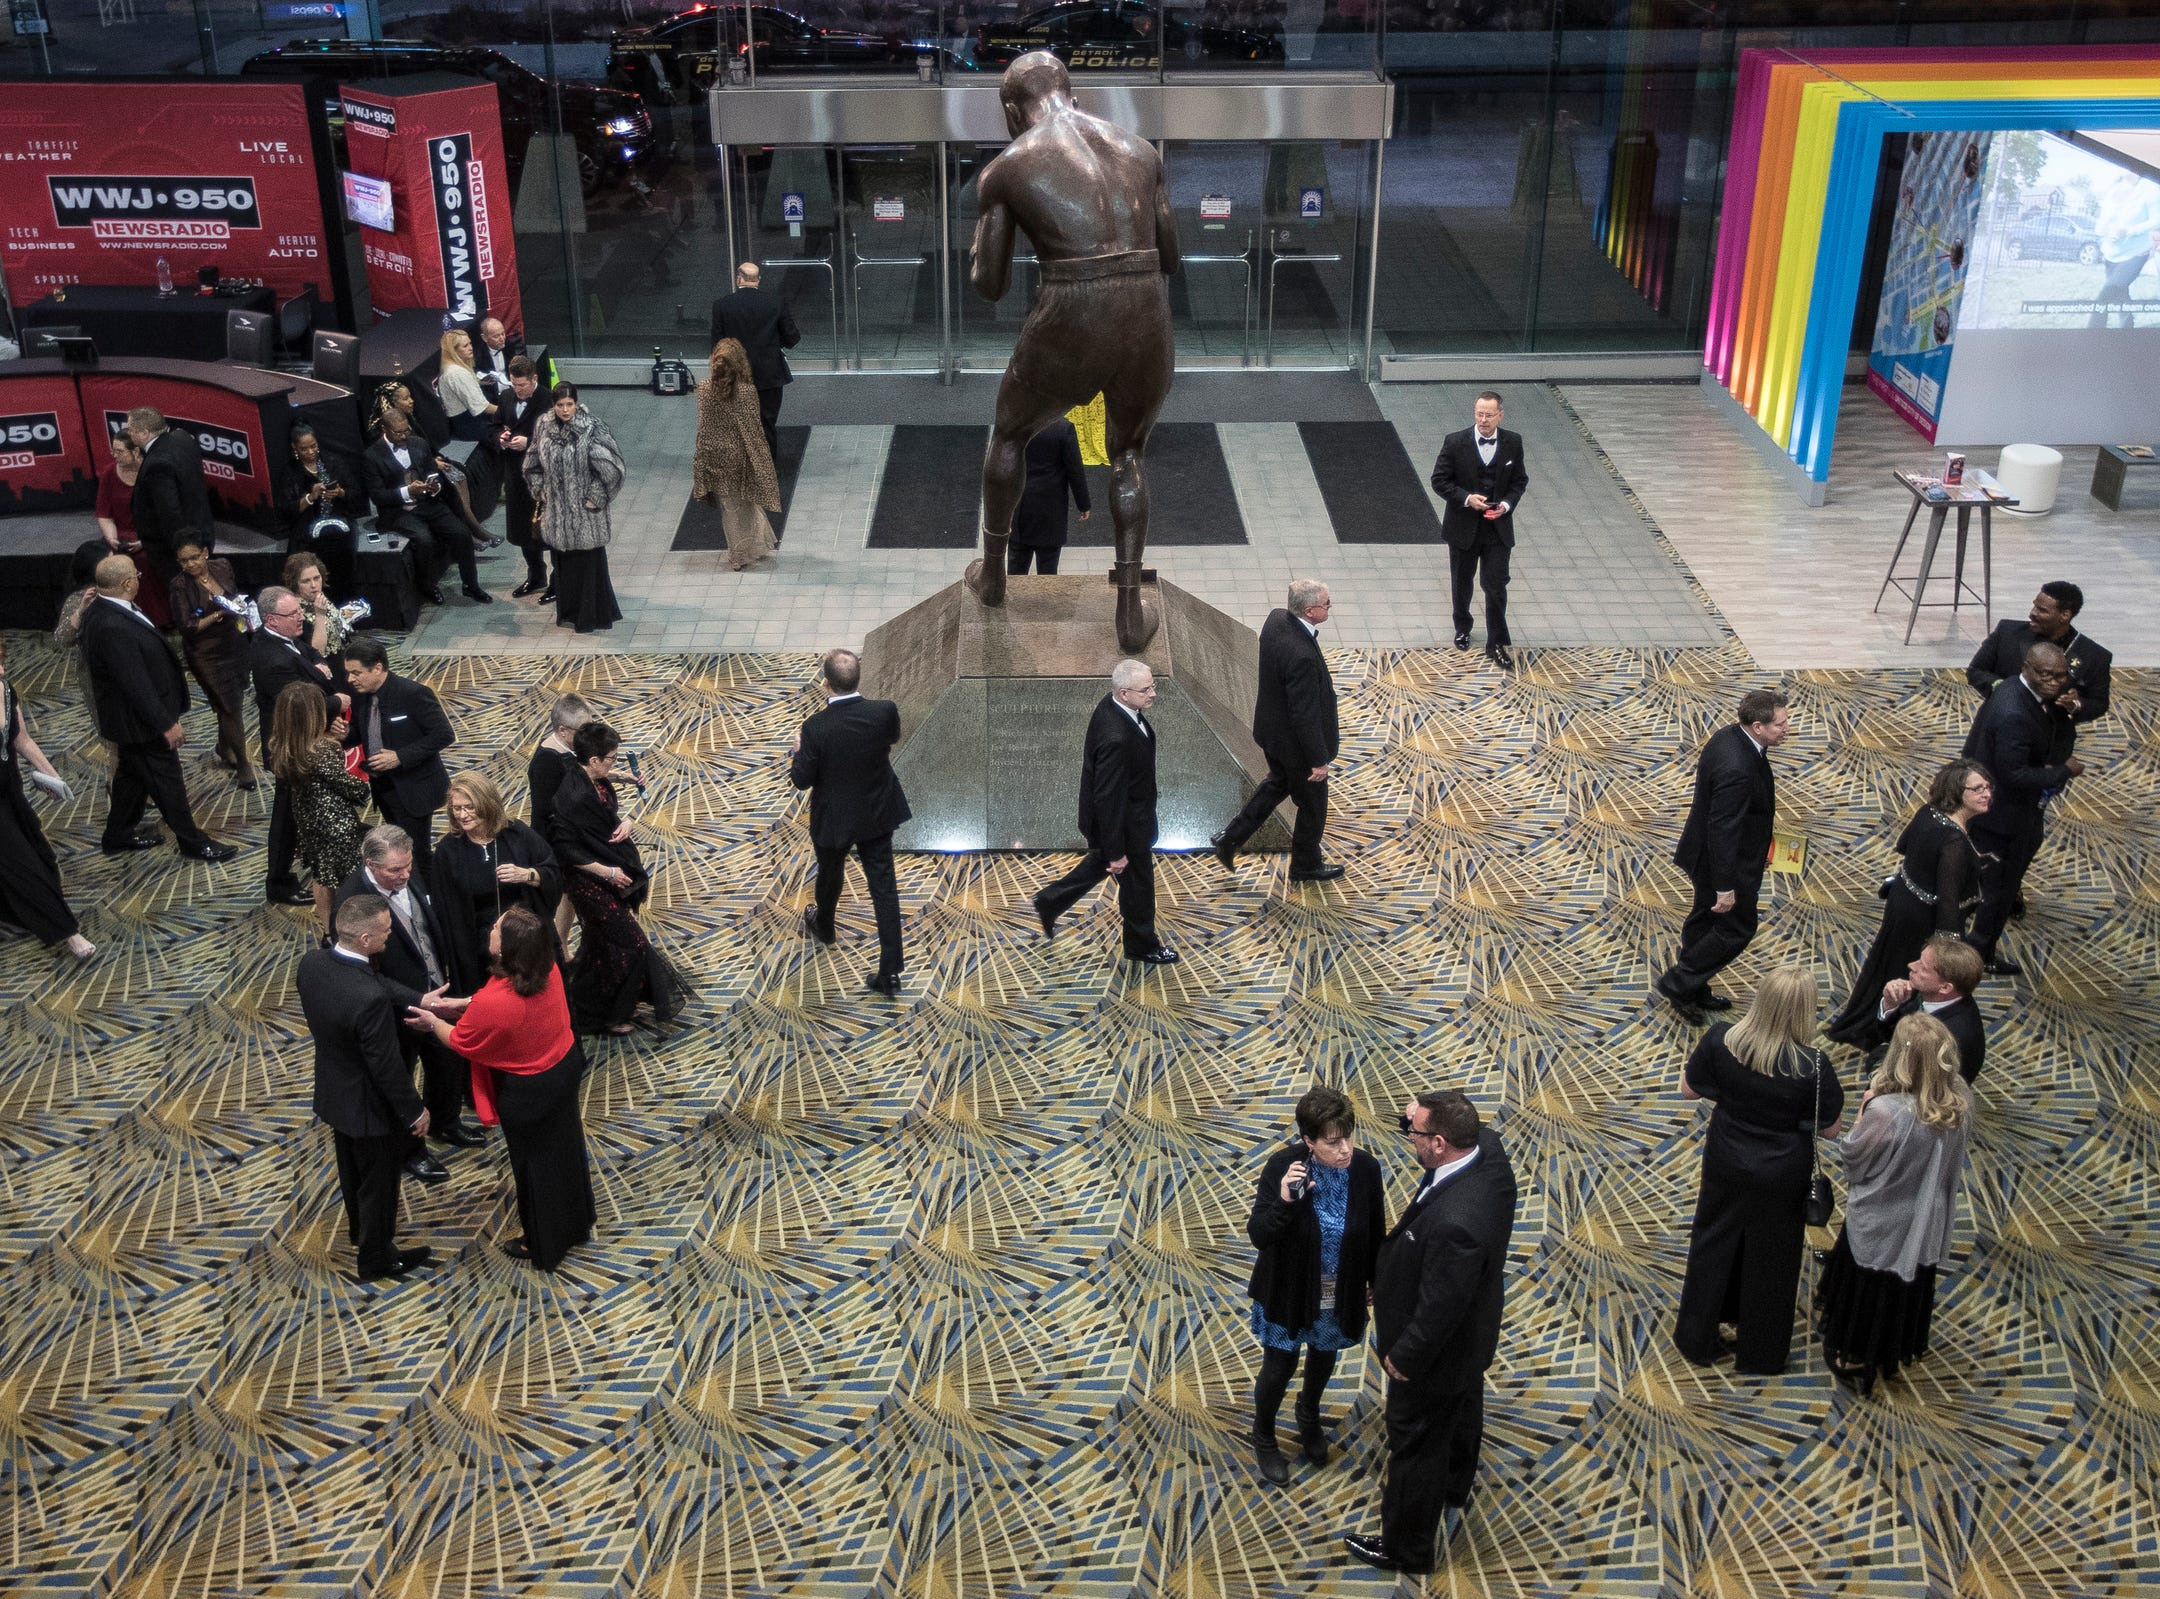 People walk by the Joe Louis statue during the 2019 North American International Auto Show Charity Preview at Cobo Center in Detroit on Friday, January 18, 2019.